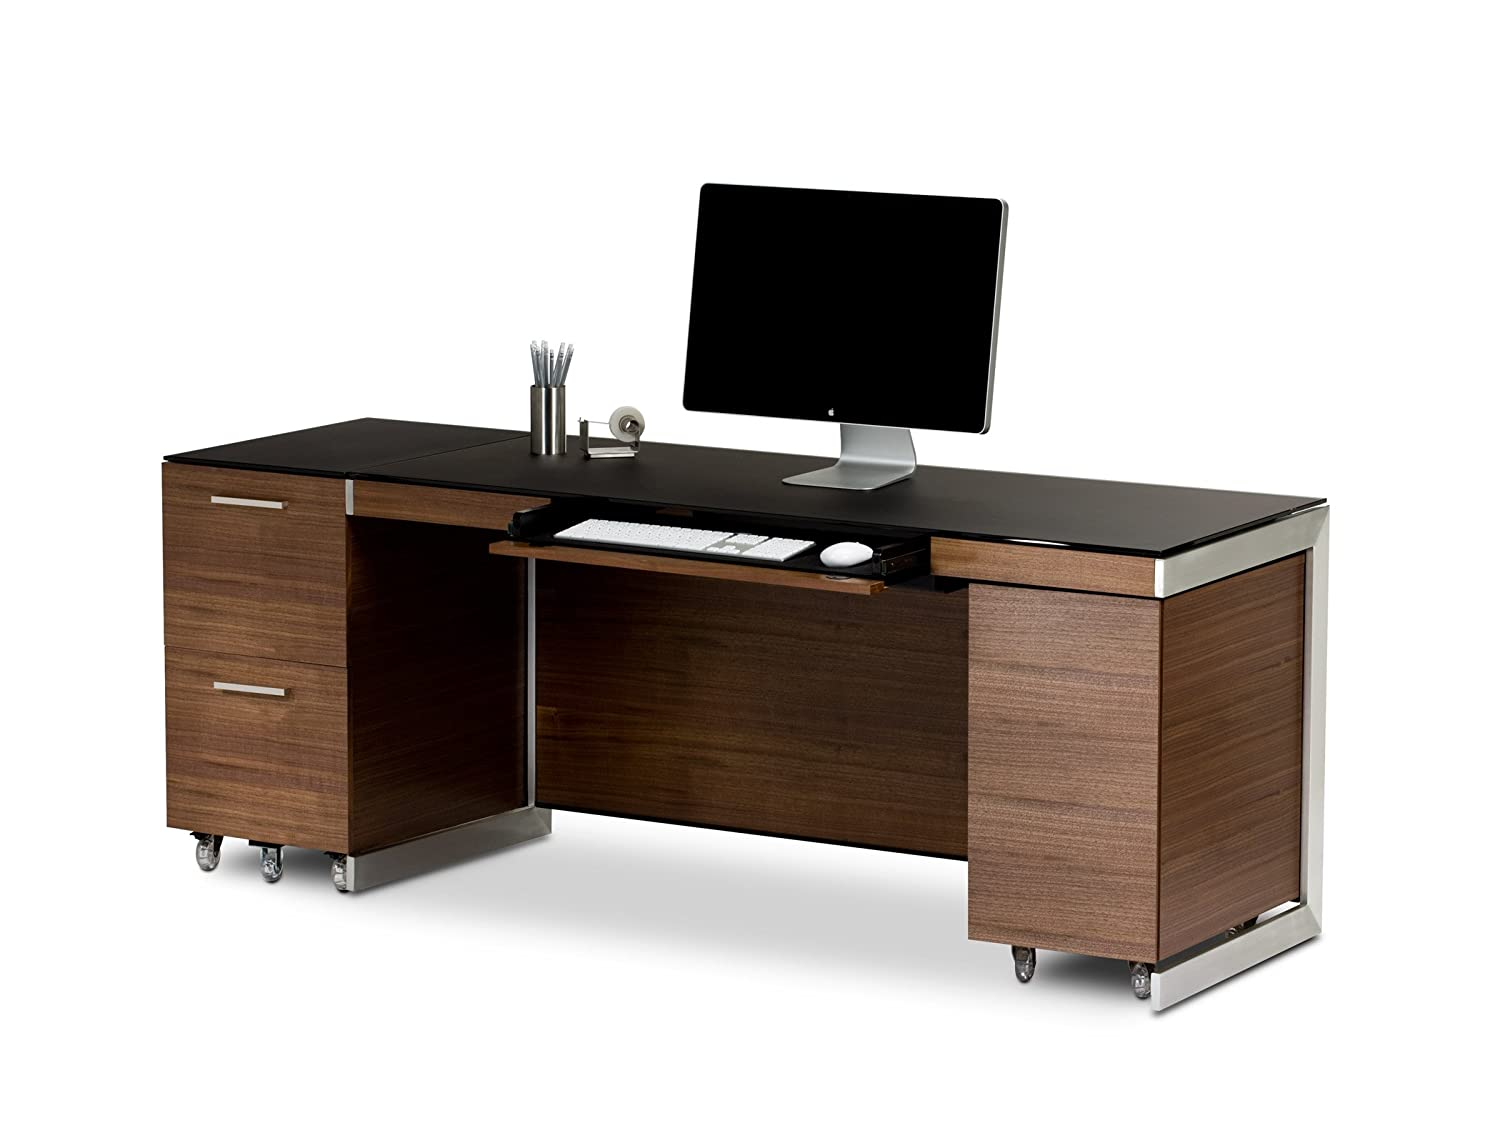 sequel office furniture. Sequel Office Furniture